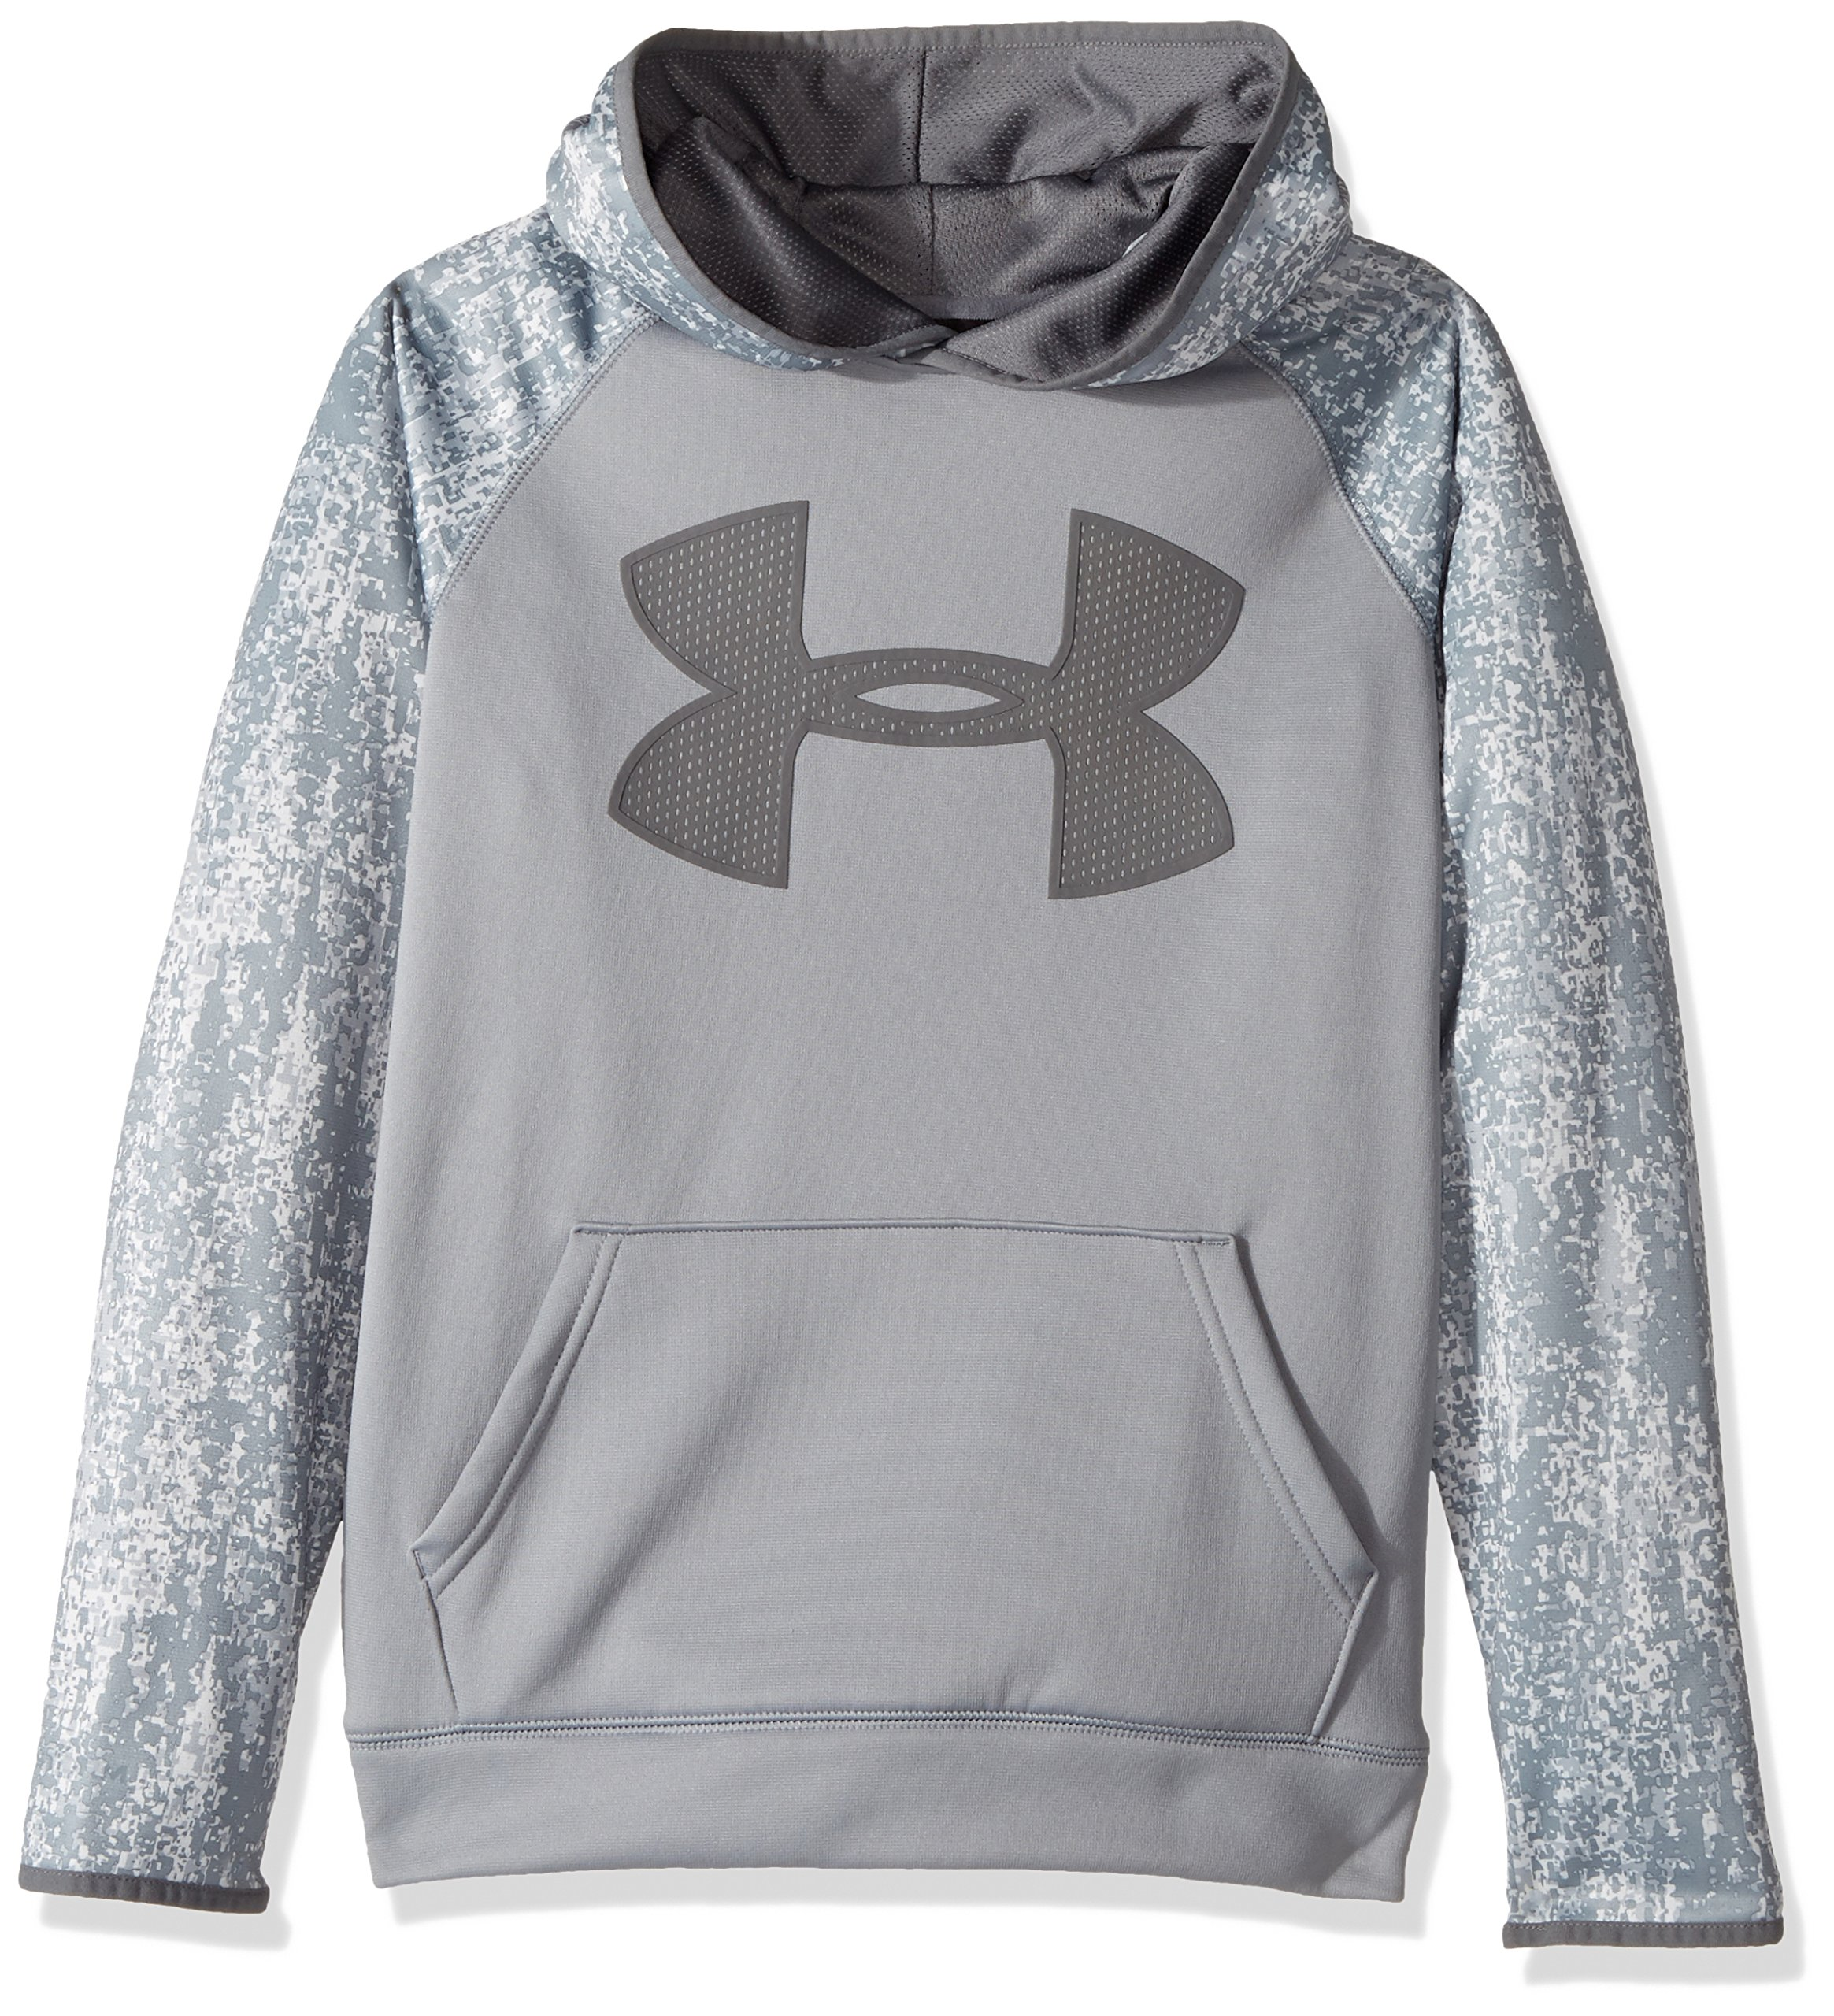 Under Armour Boys' Storm Armour Fleece Big Logo Printed Hoodie,Steel (035)/Graphite, Youth X-Small